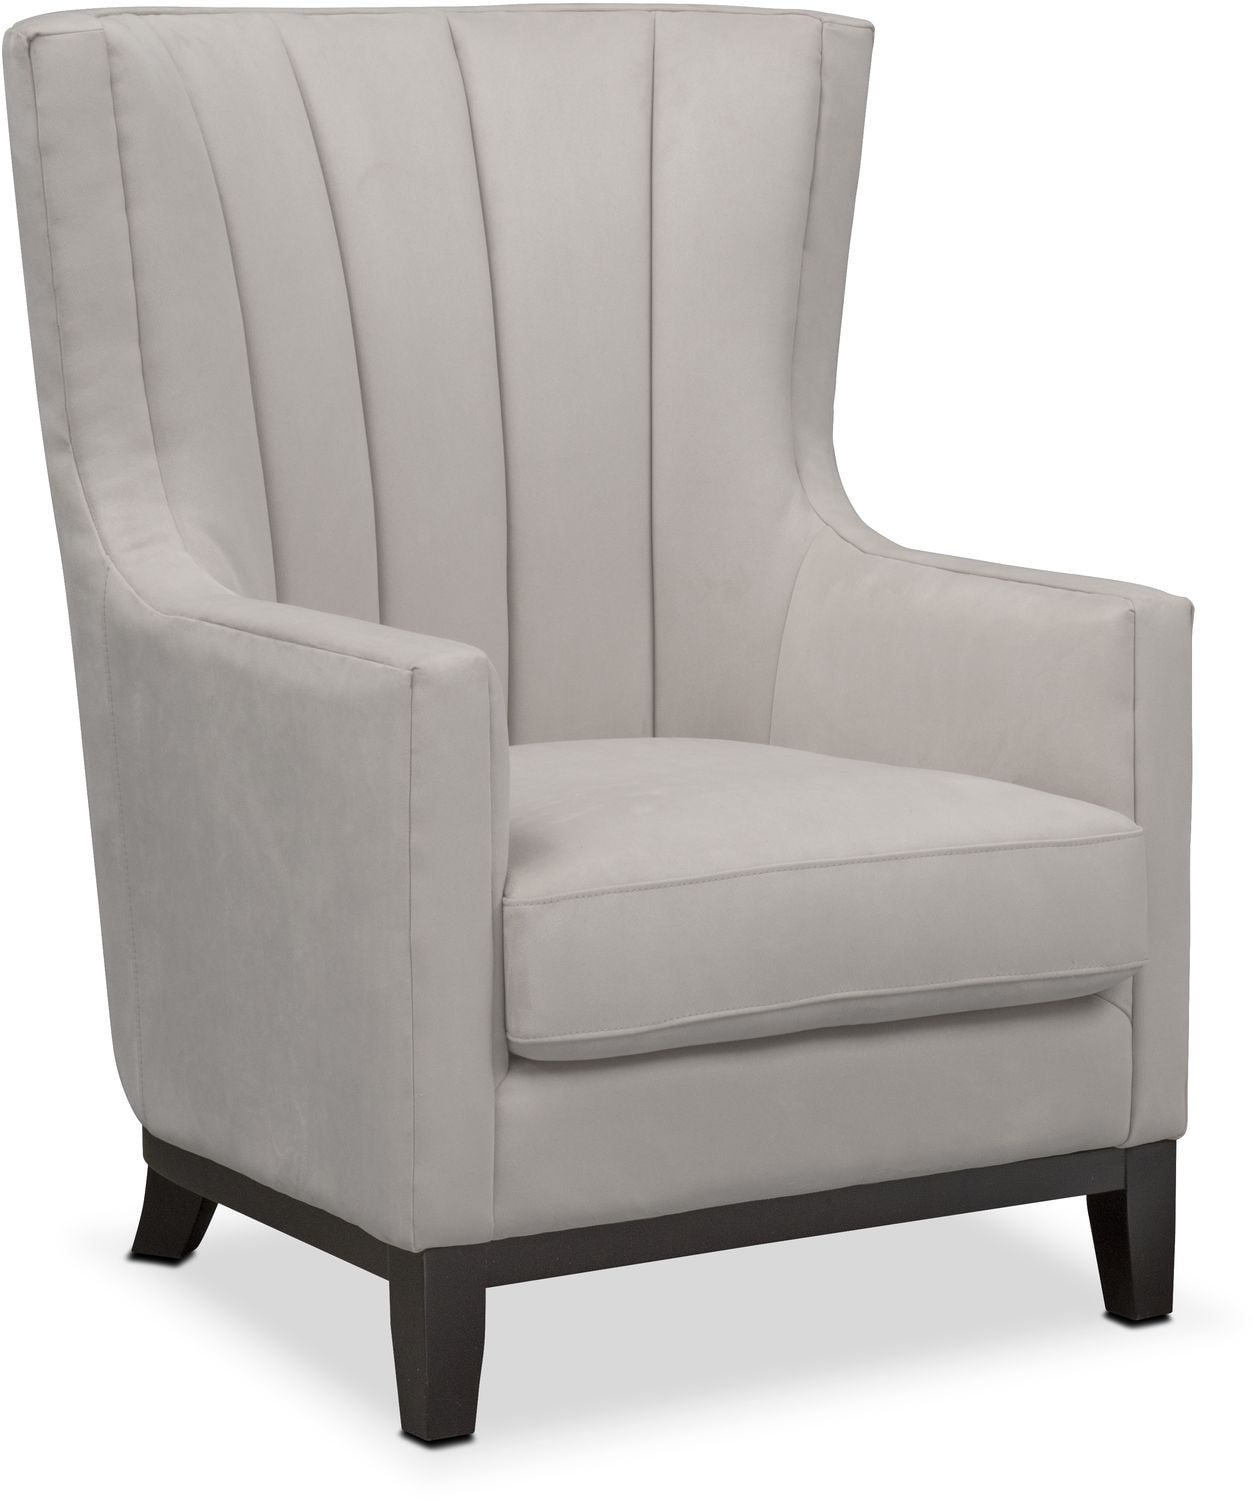 Light Gray Accent Chairs Brianna Accent Chair Light Gray American Signature